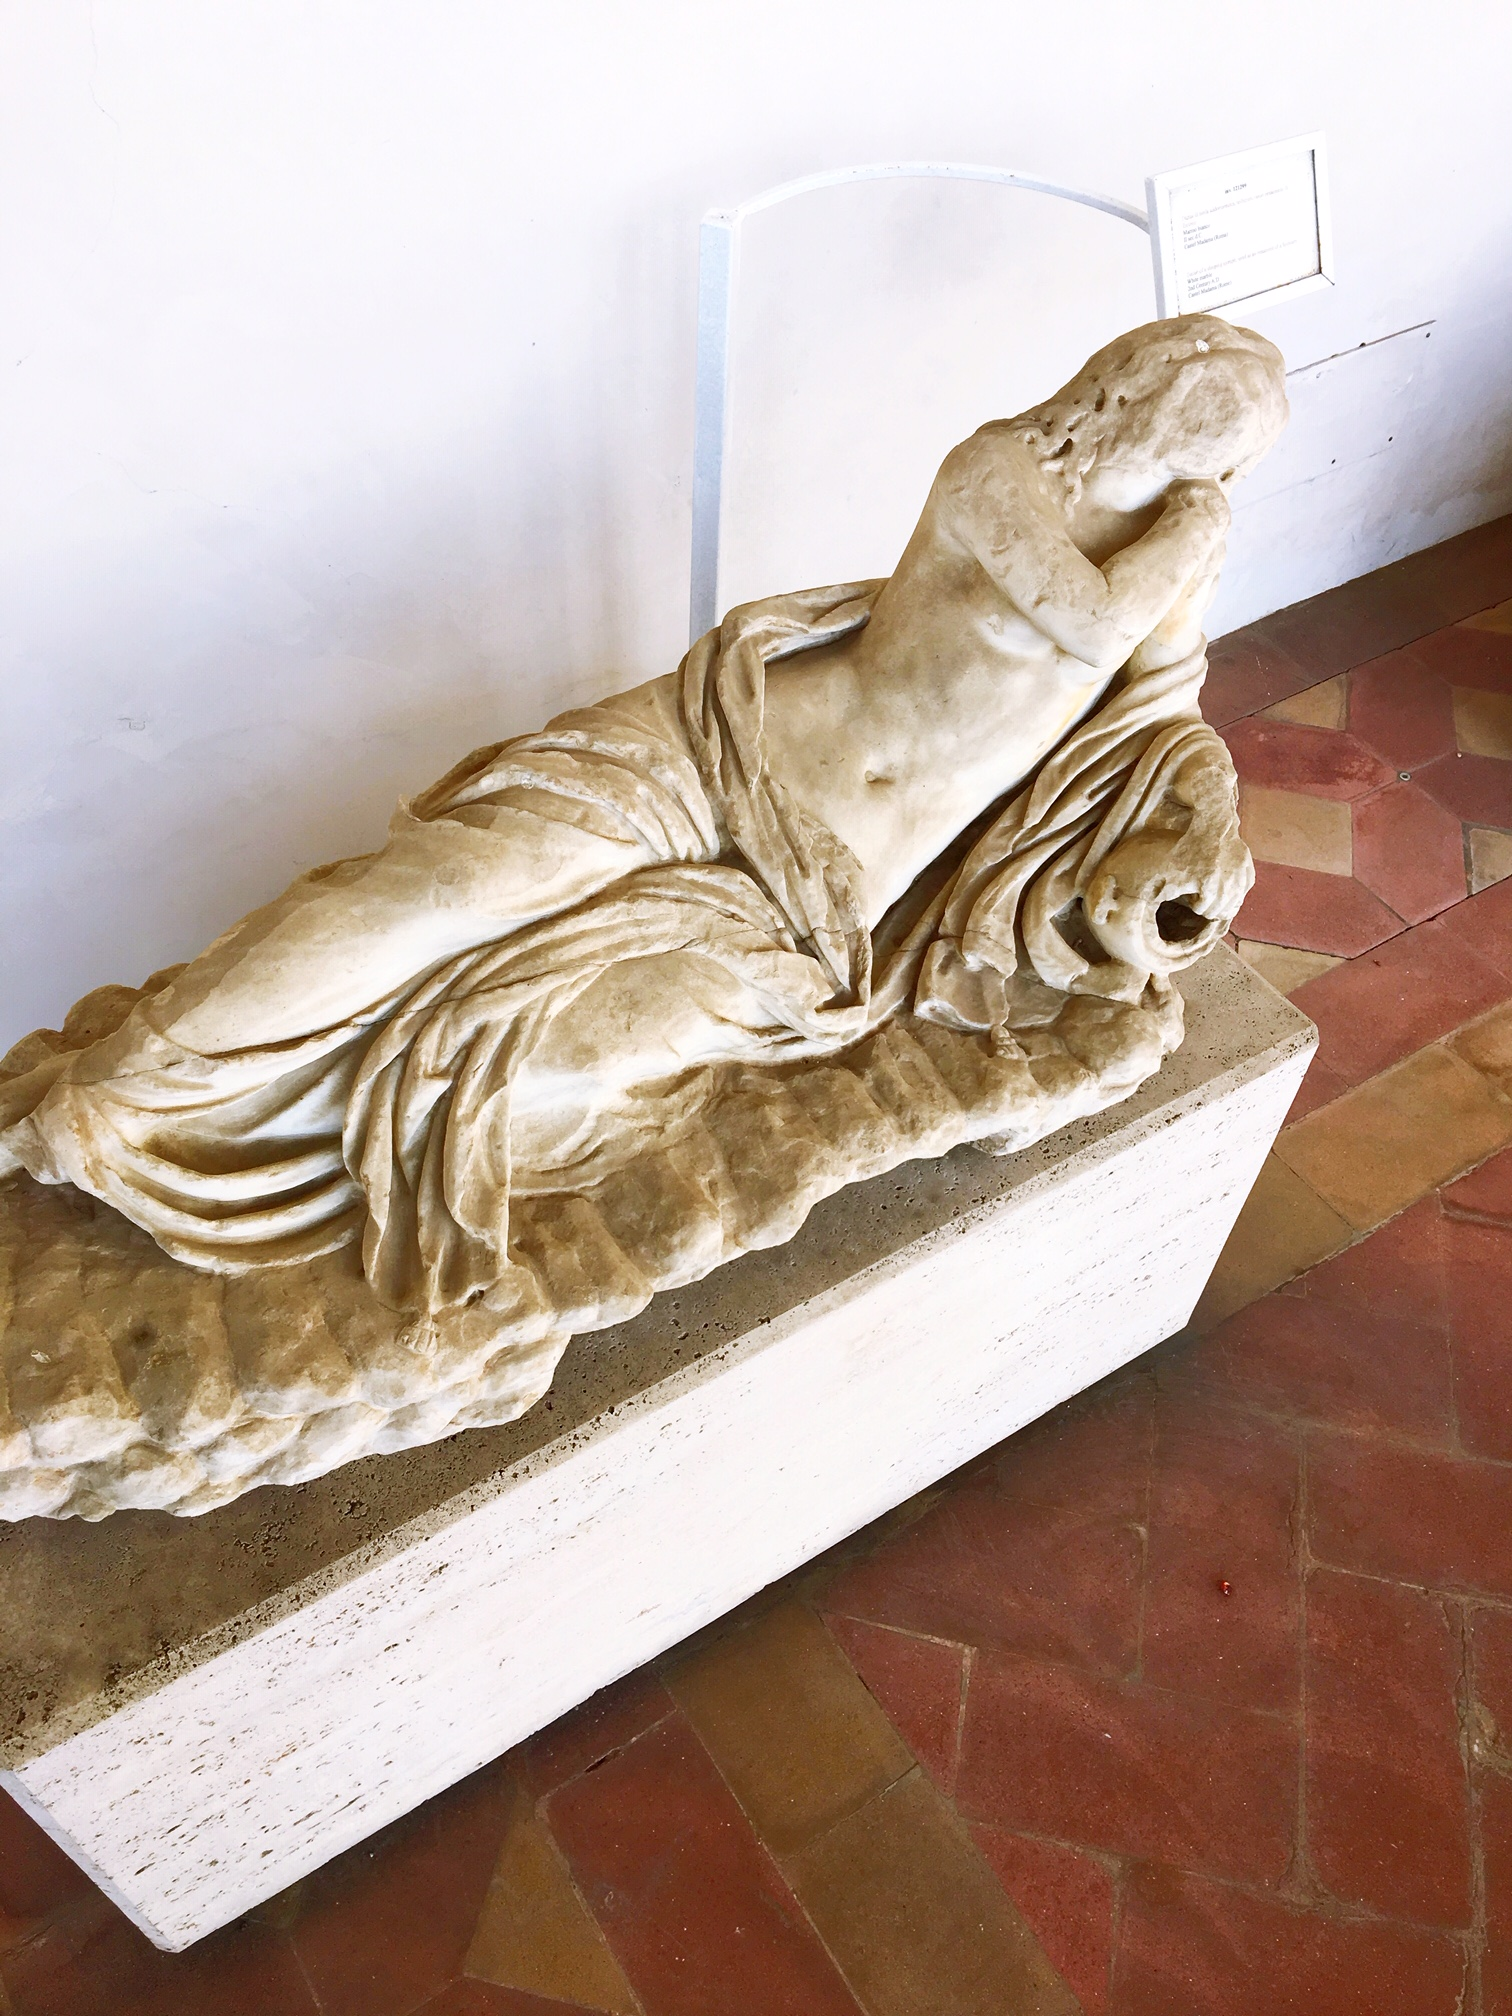 Statue of a water nymph from a 2nd century fountain. Found at the Baths of Diocletian in Rome